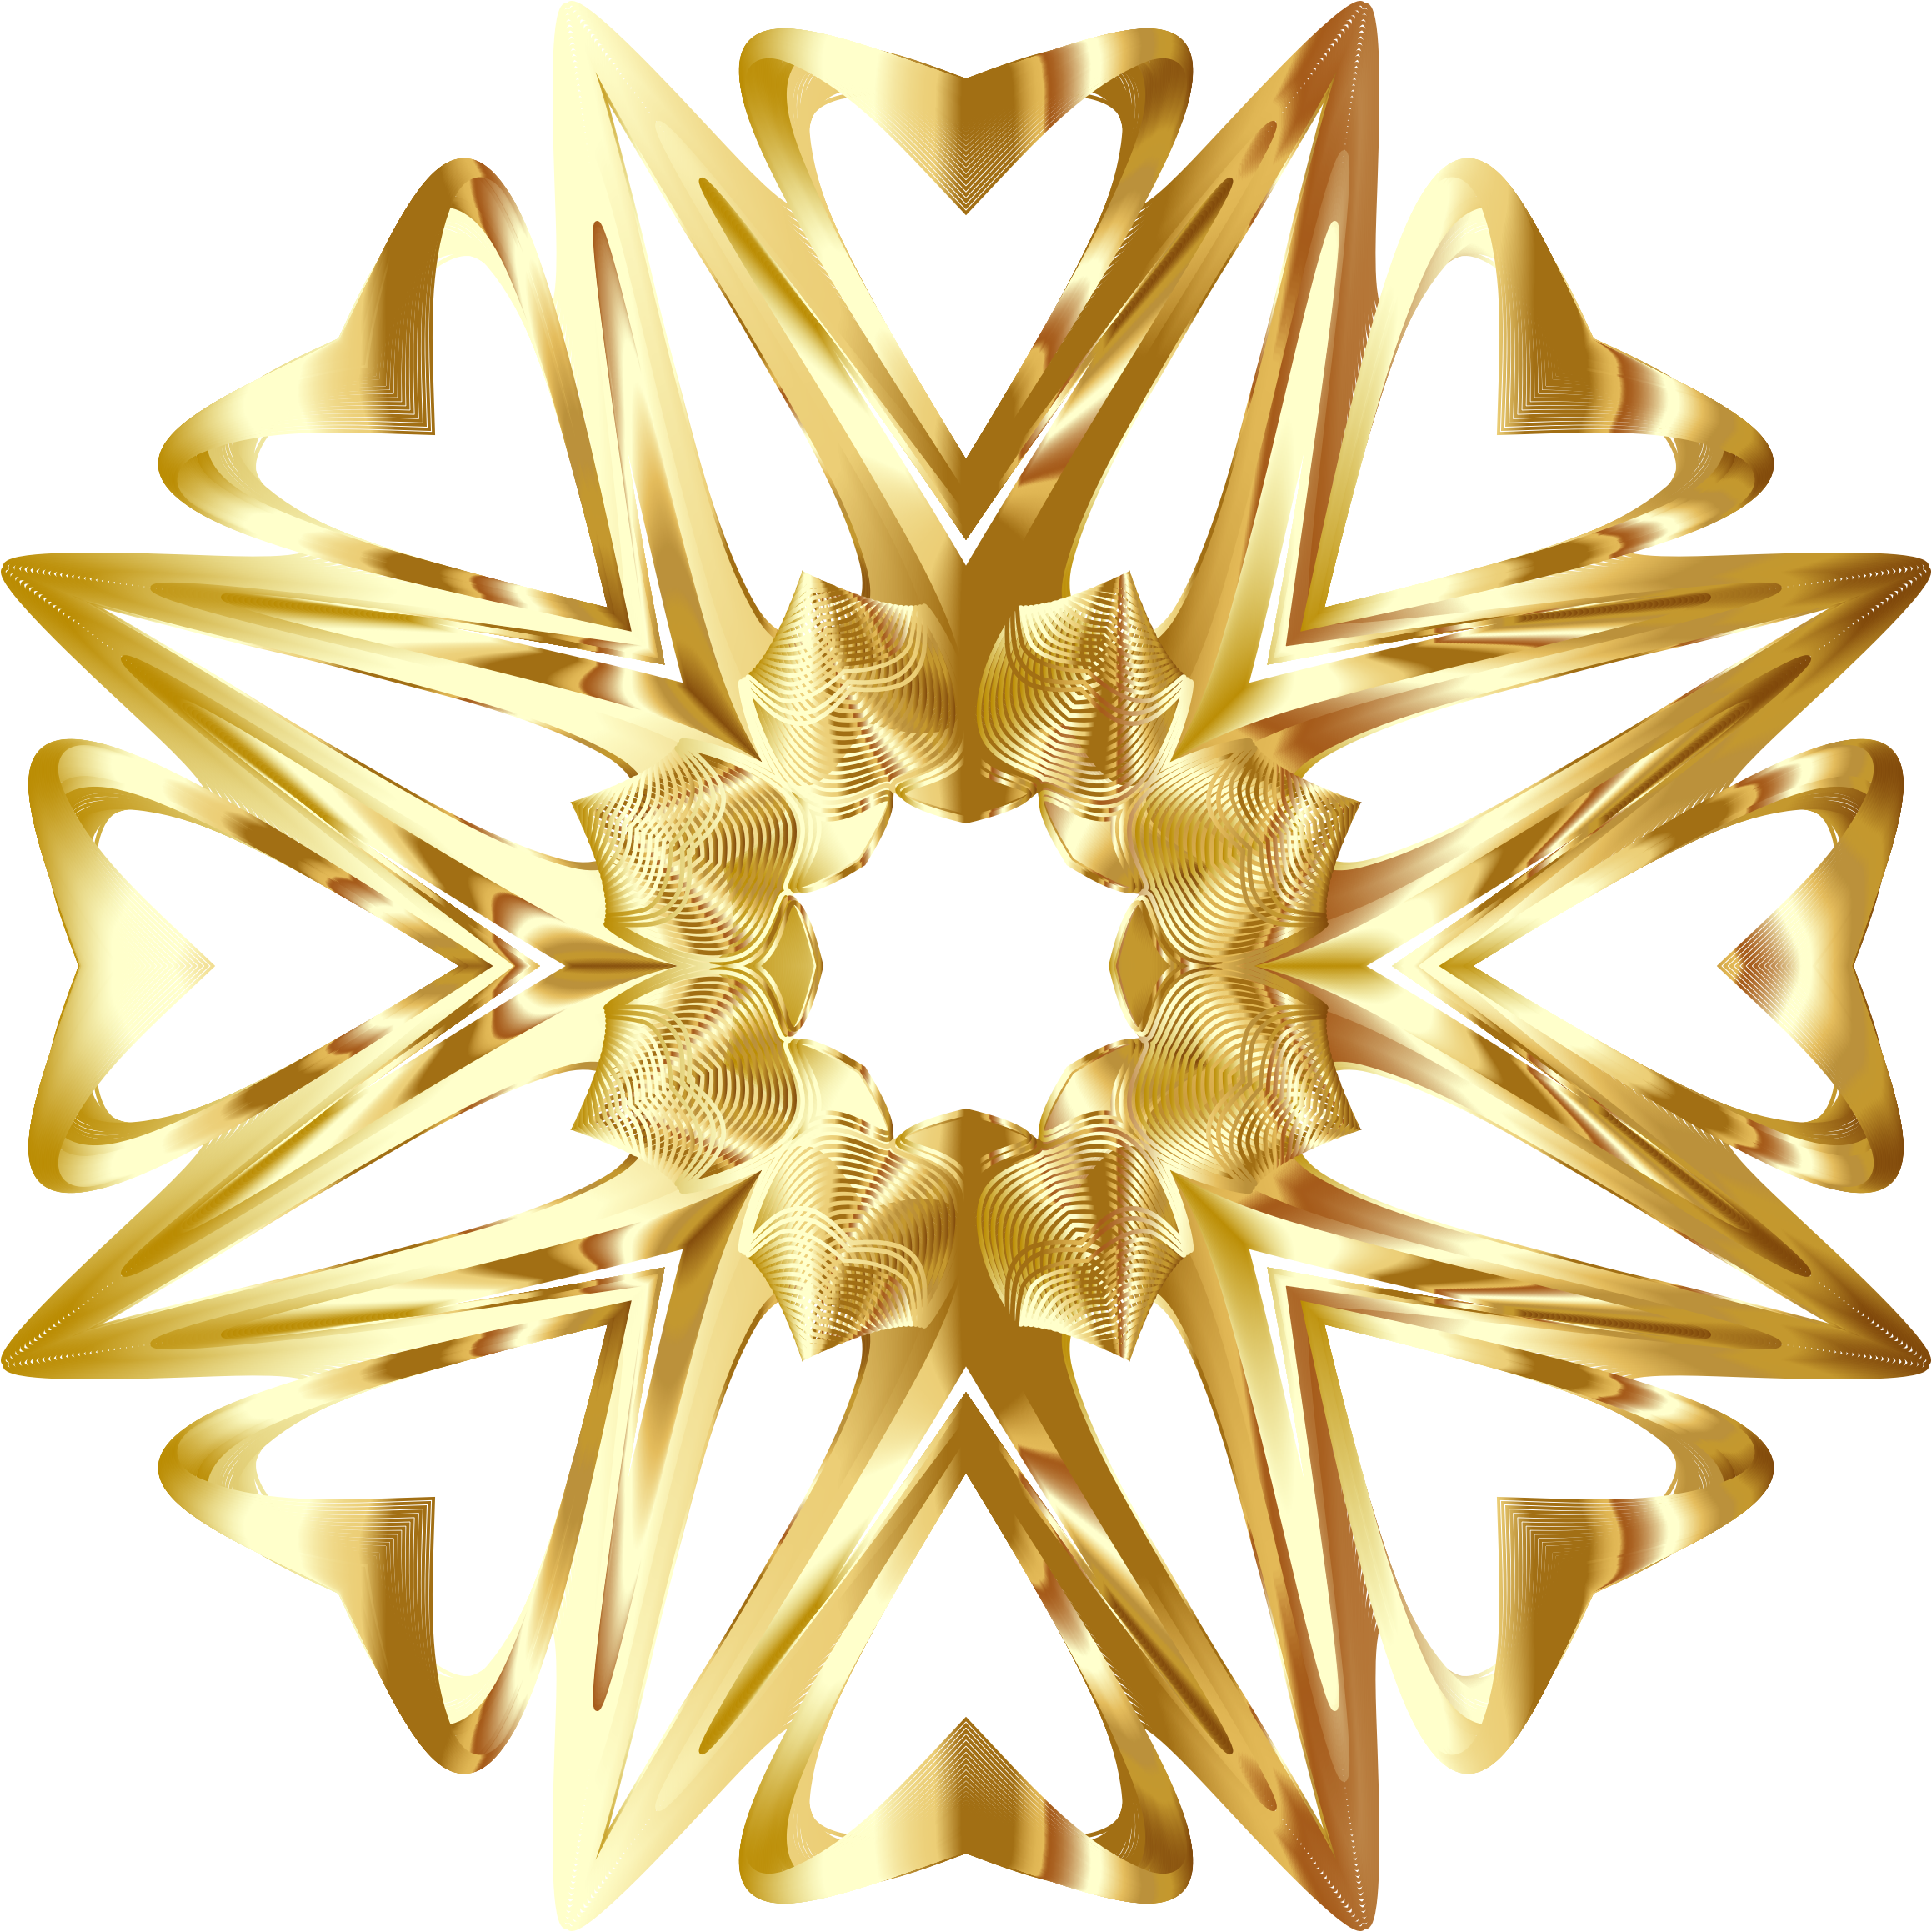 Gold star line clipart png freeuse stock Clipart - Prismatic Star Line Art 6 Variation 3 No Background png freeuse stock